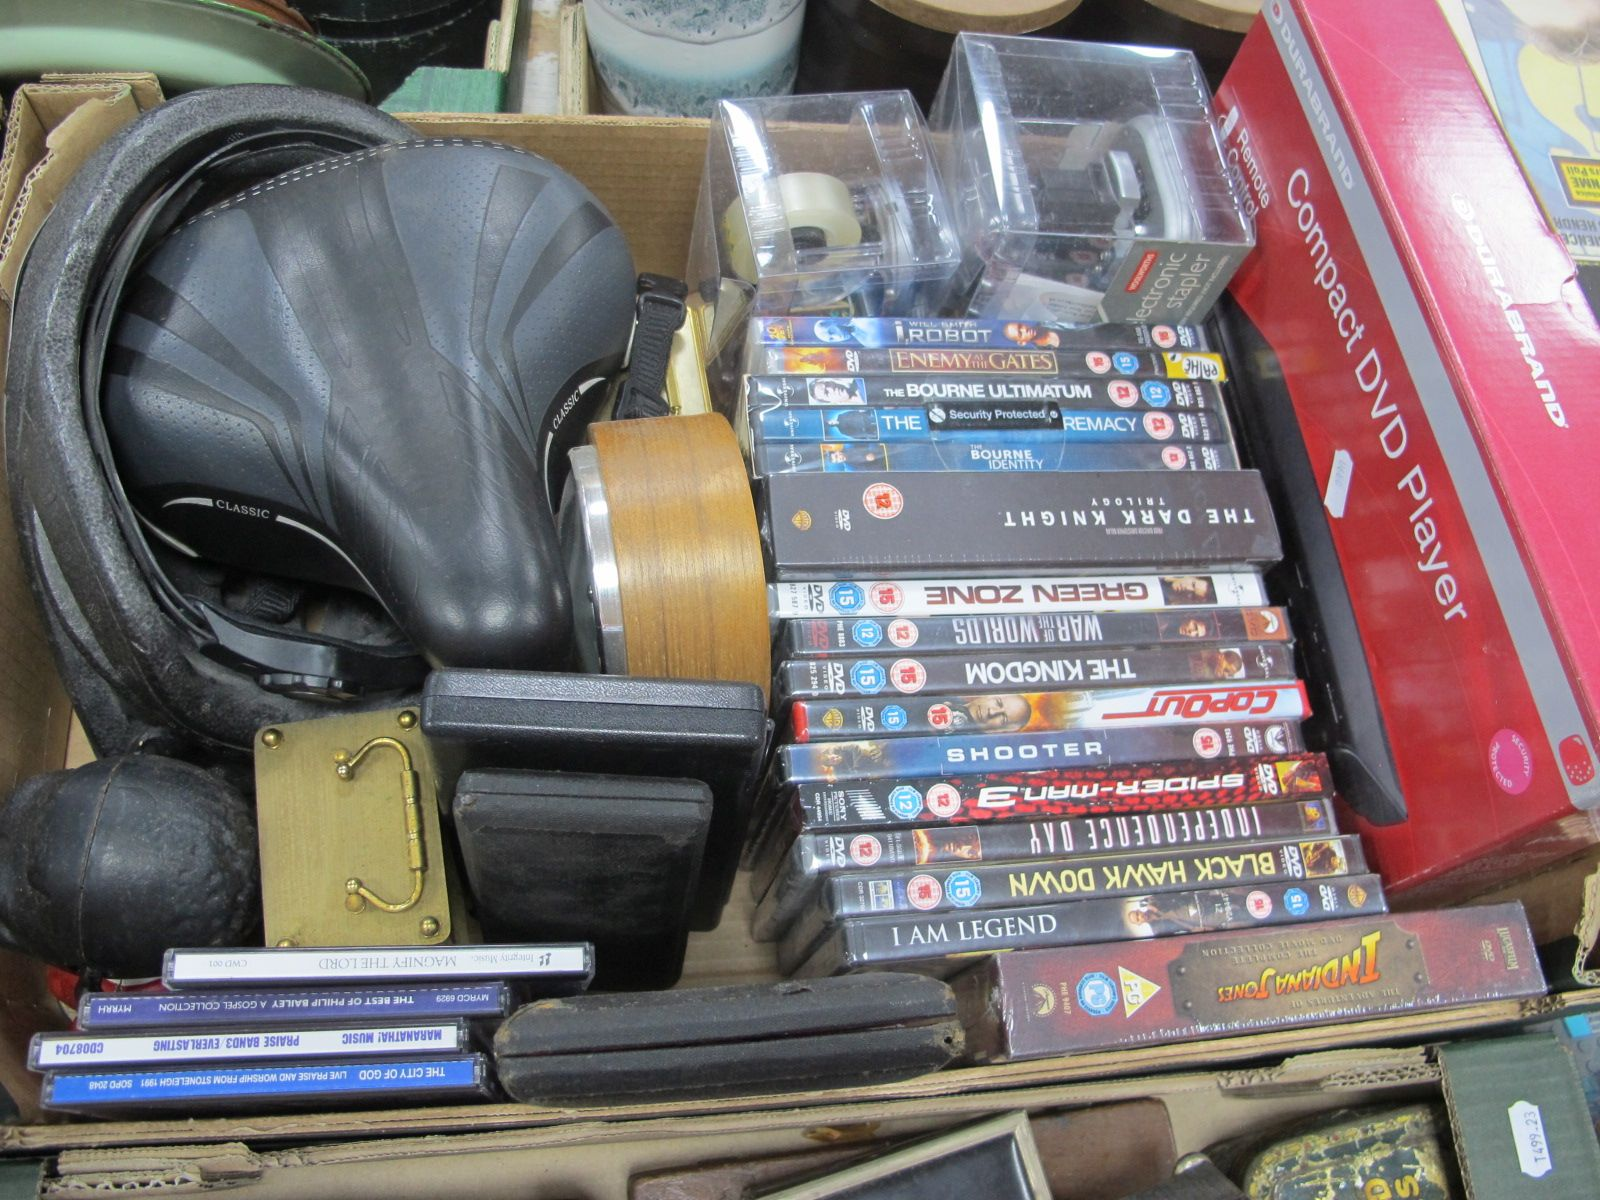 Riefler and Other Geometry Implements, cyclists helmet and saddle, dvd player and discs, Jolly money